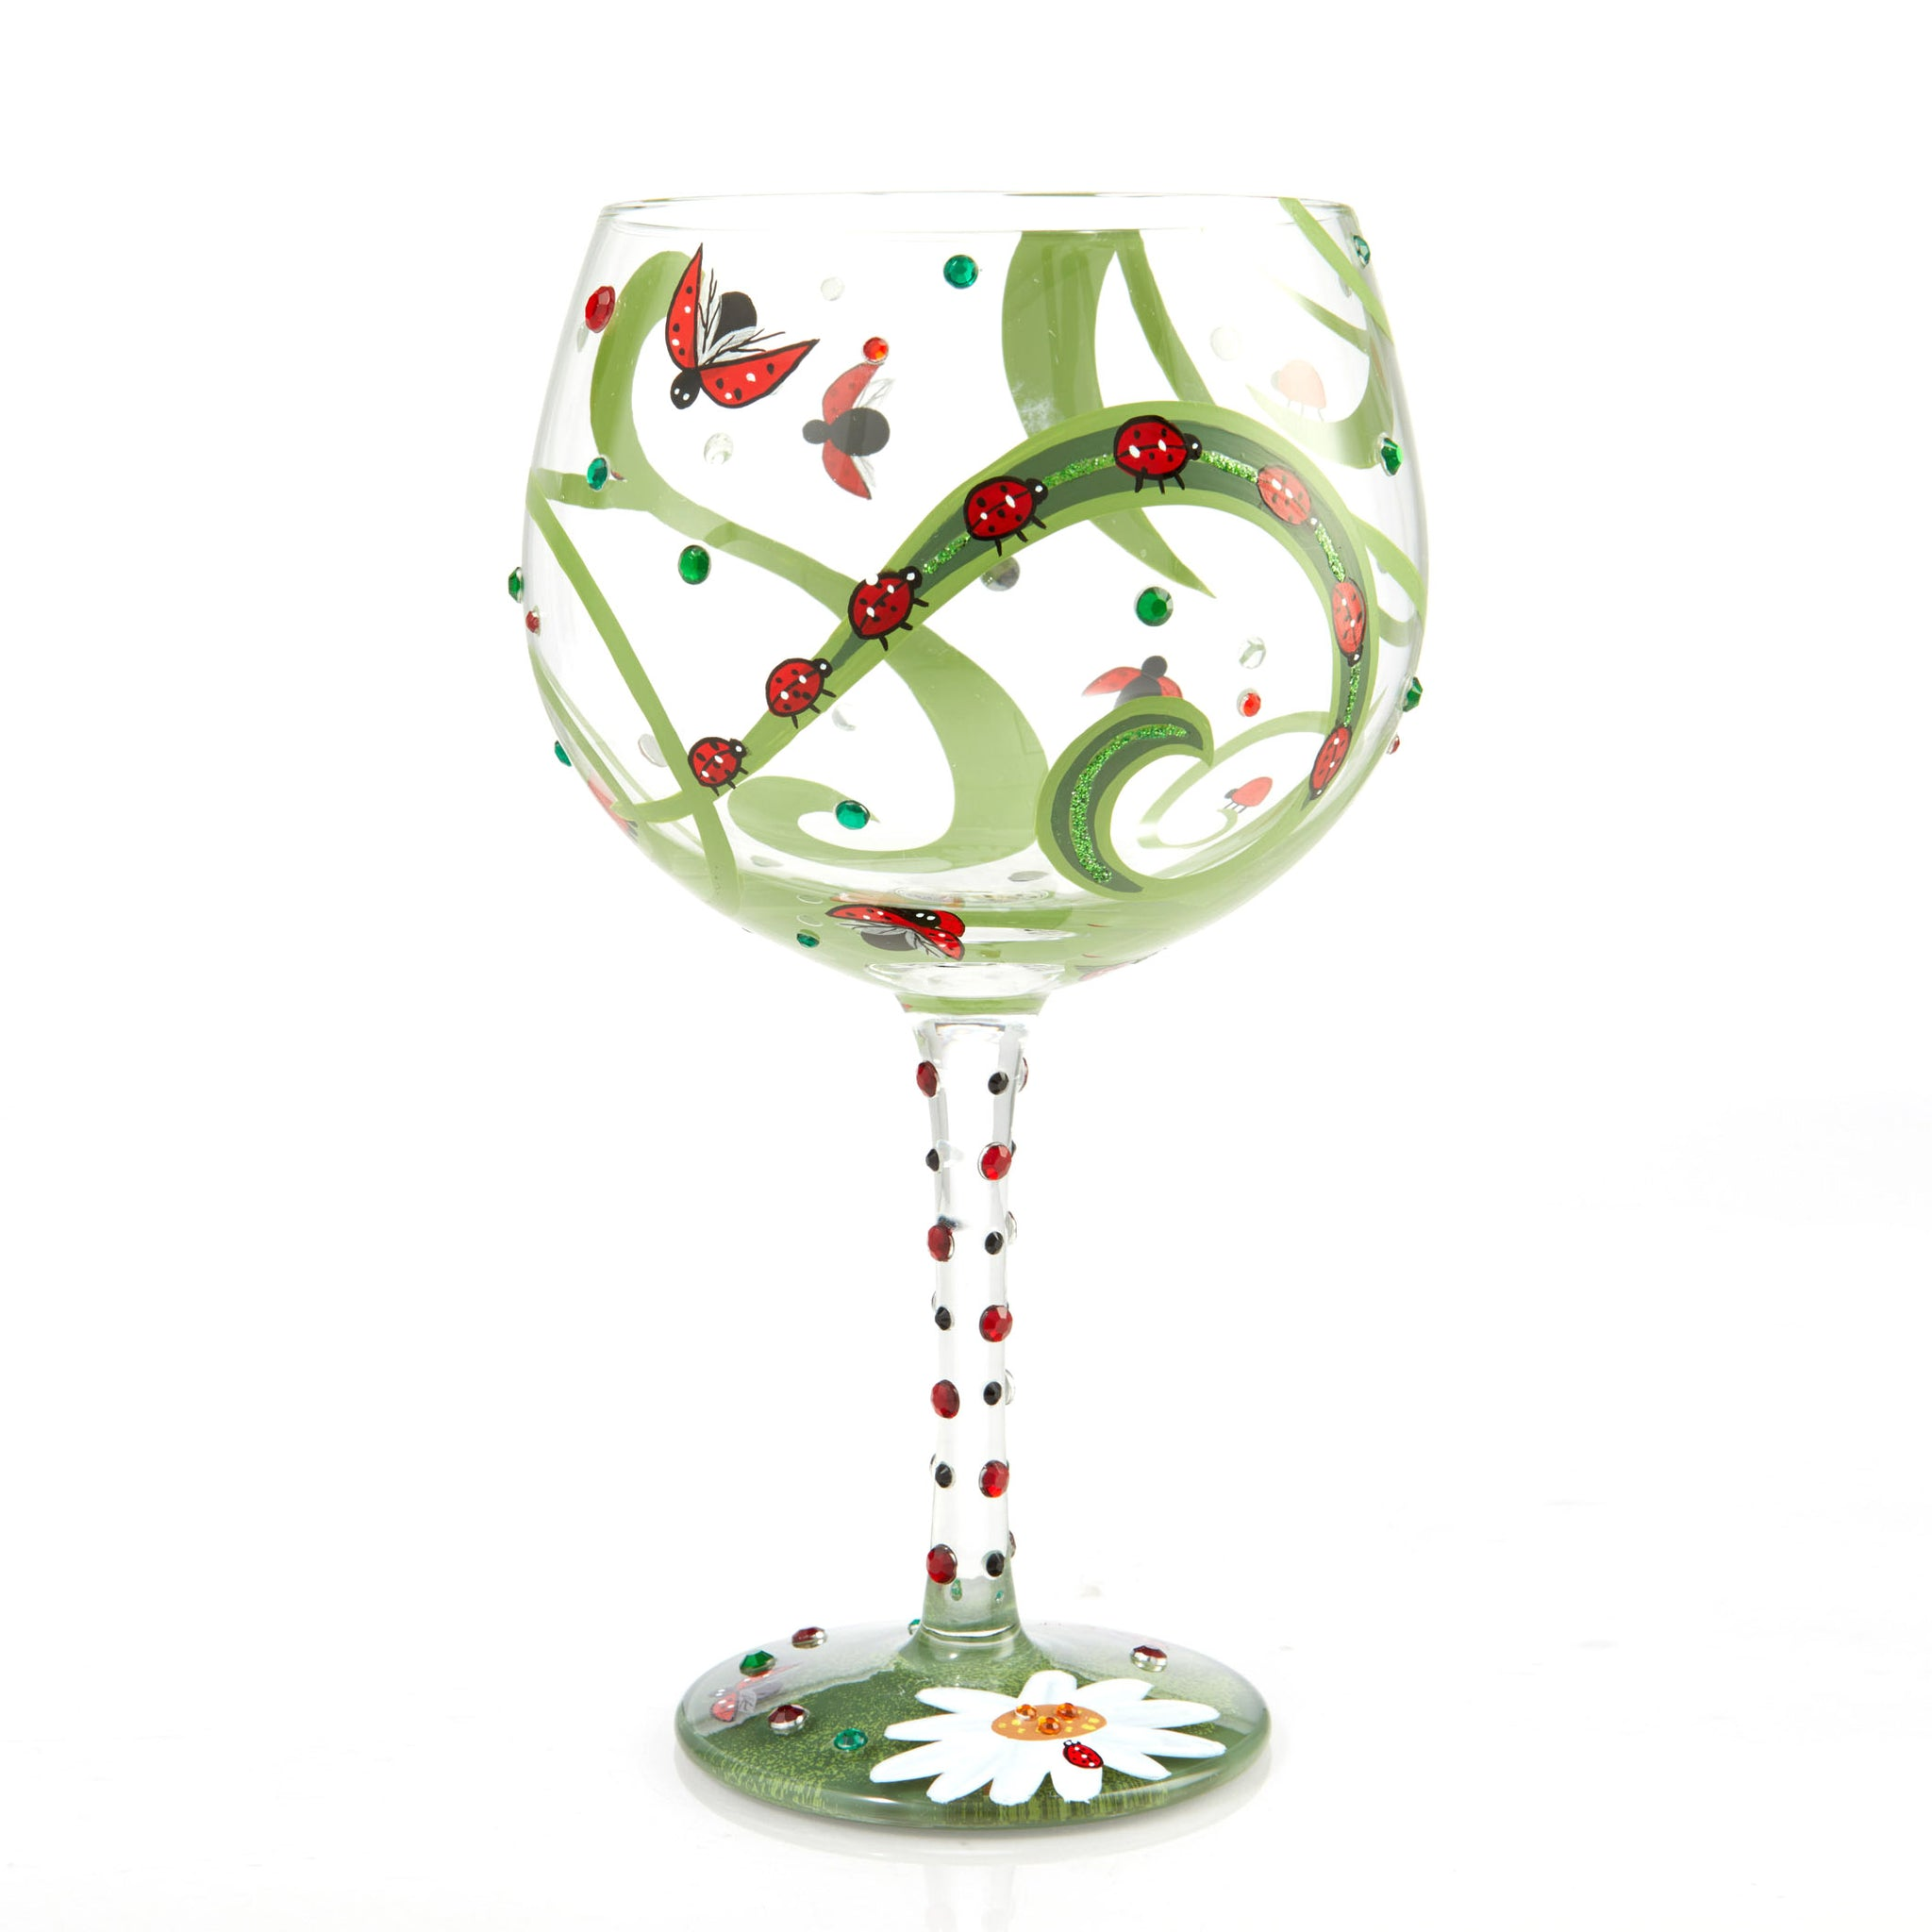 Cocktail Glasses Designs By Lolita